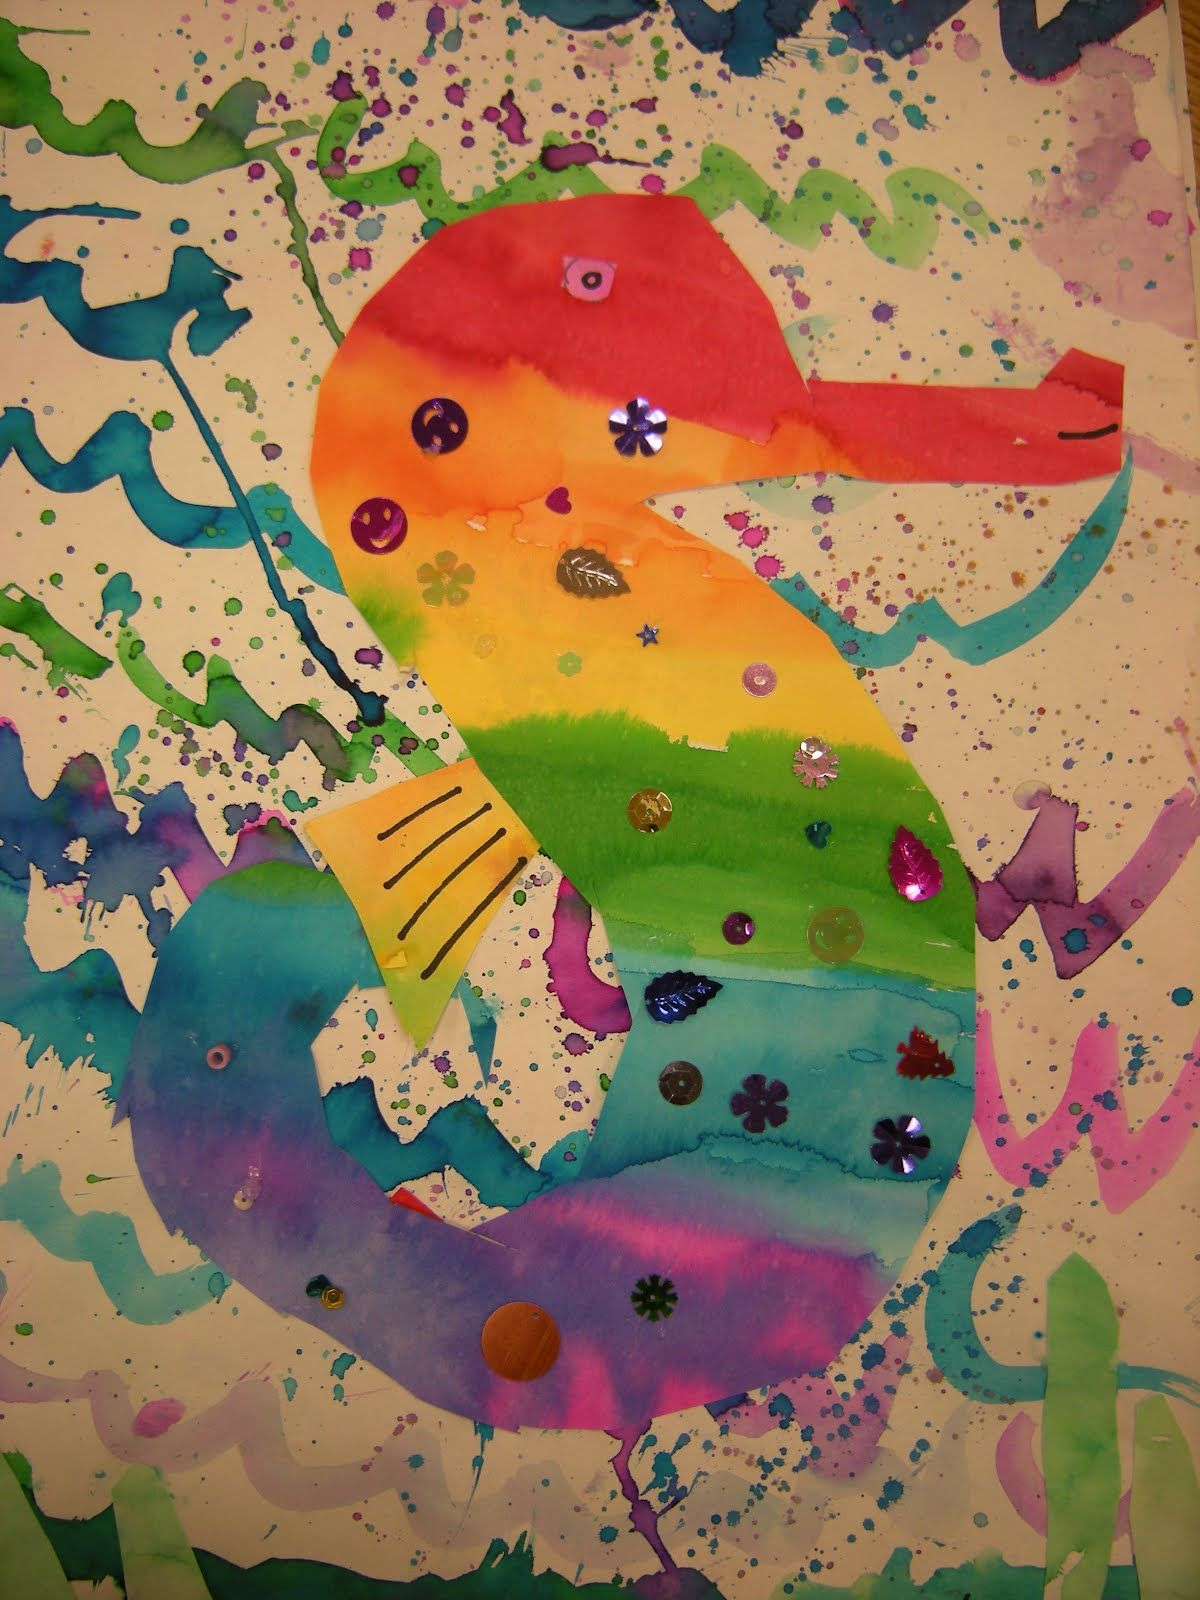 Color wheel art lesson for second grade - Artolazzi Grade Color Wheel Idea Inspired By Mister Seahorse Written By Eric Carle In Art Class Second